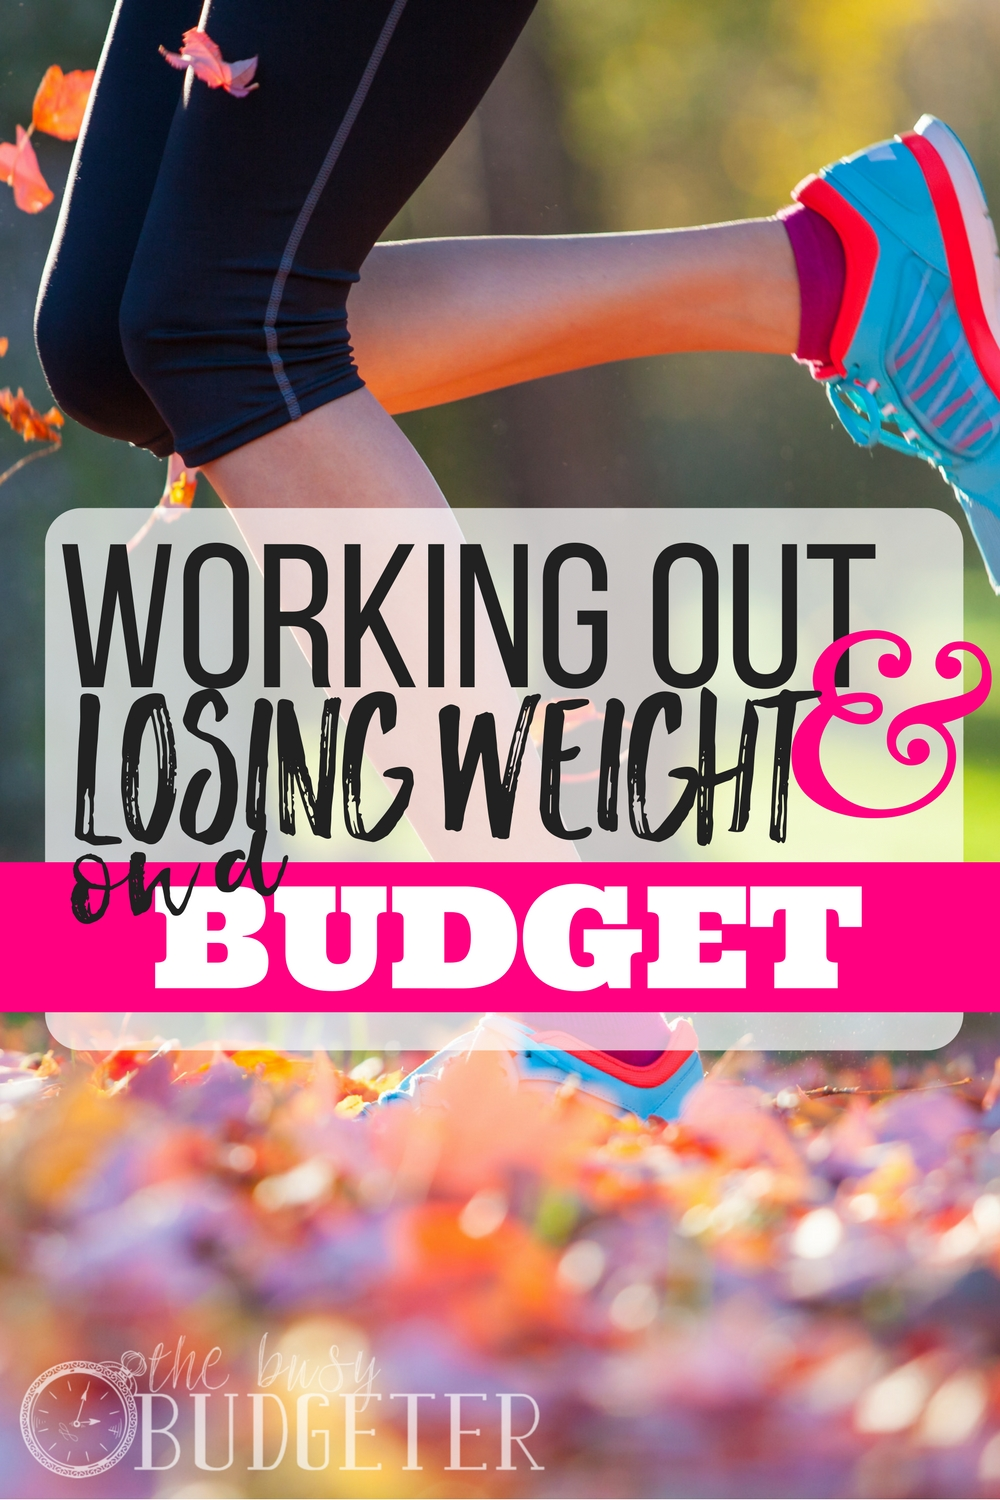 Working out & losing weight on a budget.I have been working at losing weight Forever! I've tried everything and spent a ton of money I don't have! And yet, here it is and it's simple. I lost 2 pounds in the last week using the Zova app! Its cheap, easy and I never left my house! The best part the kids are doing it too! I would love for them to not have to ever have to struggle with this.